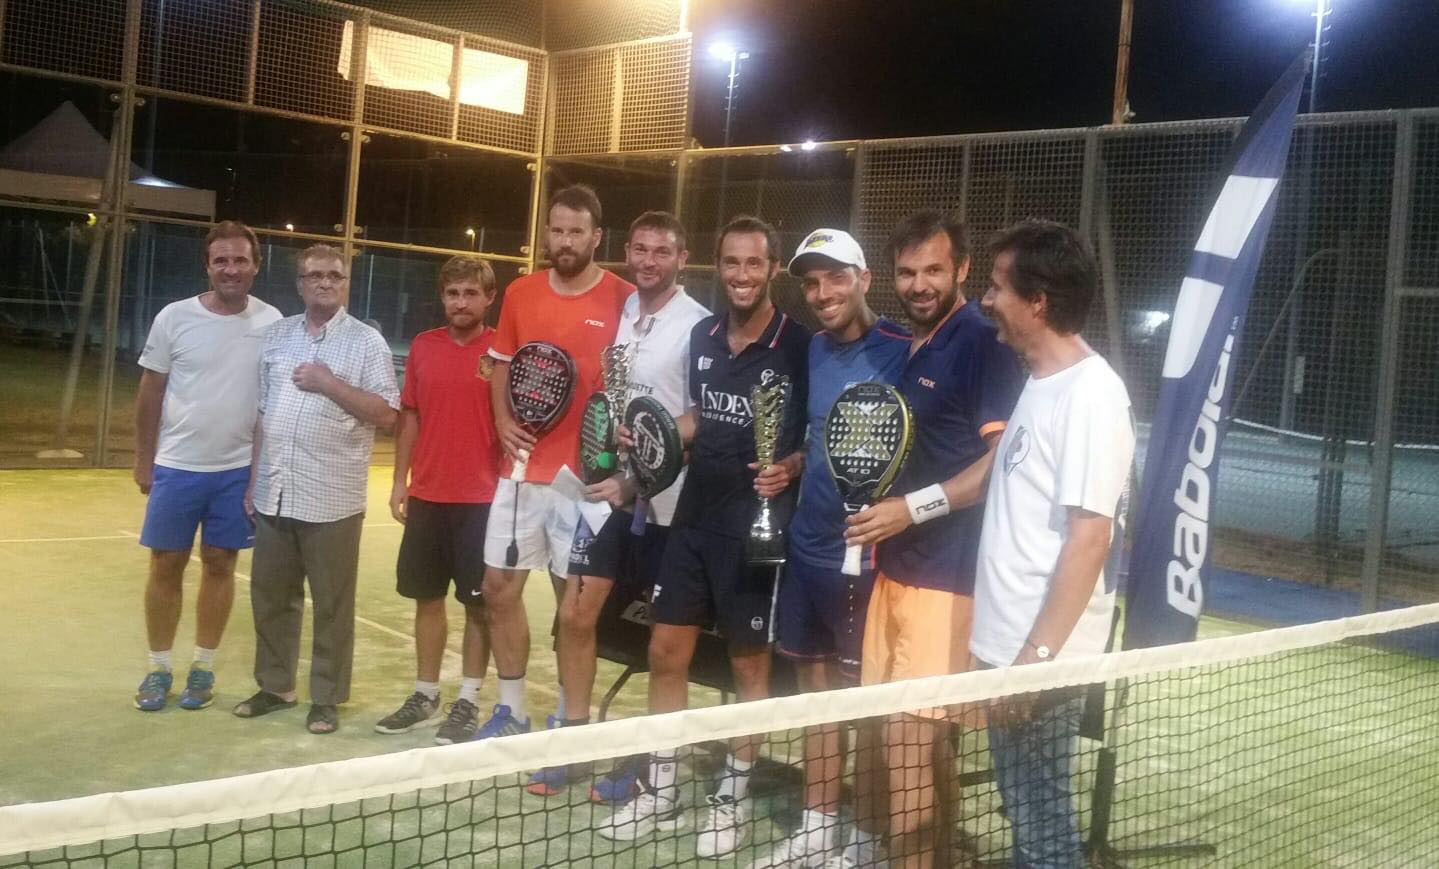 Torna all'Open da Padel Roquettan - P1000